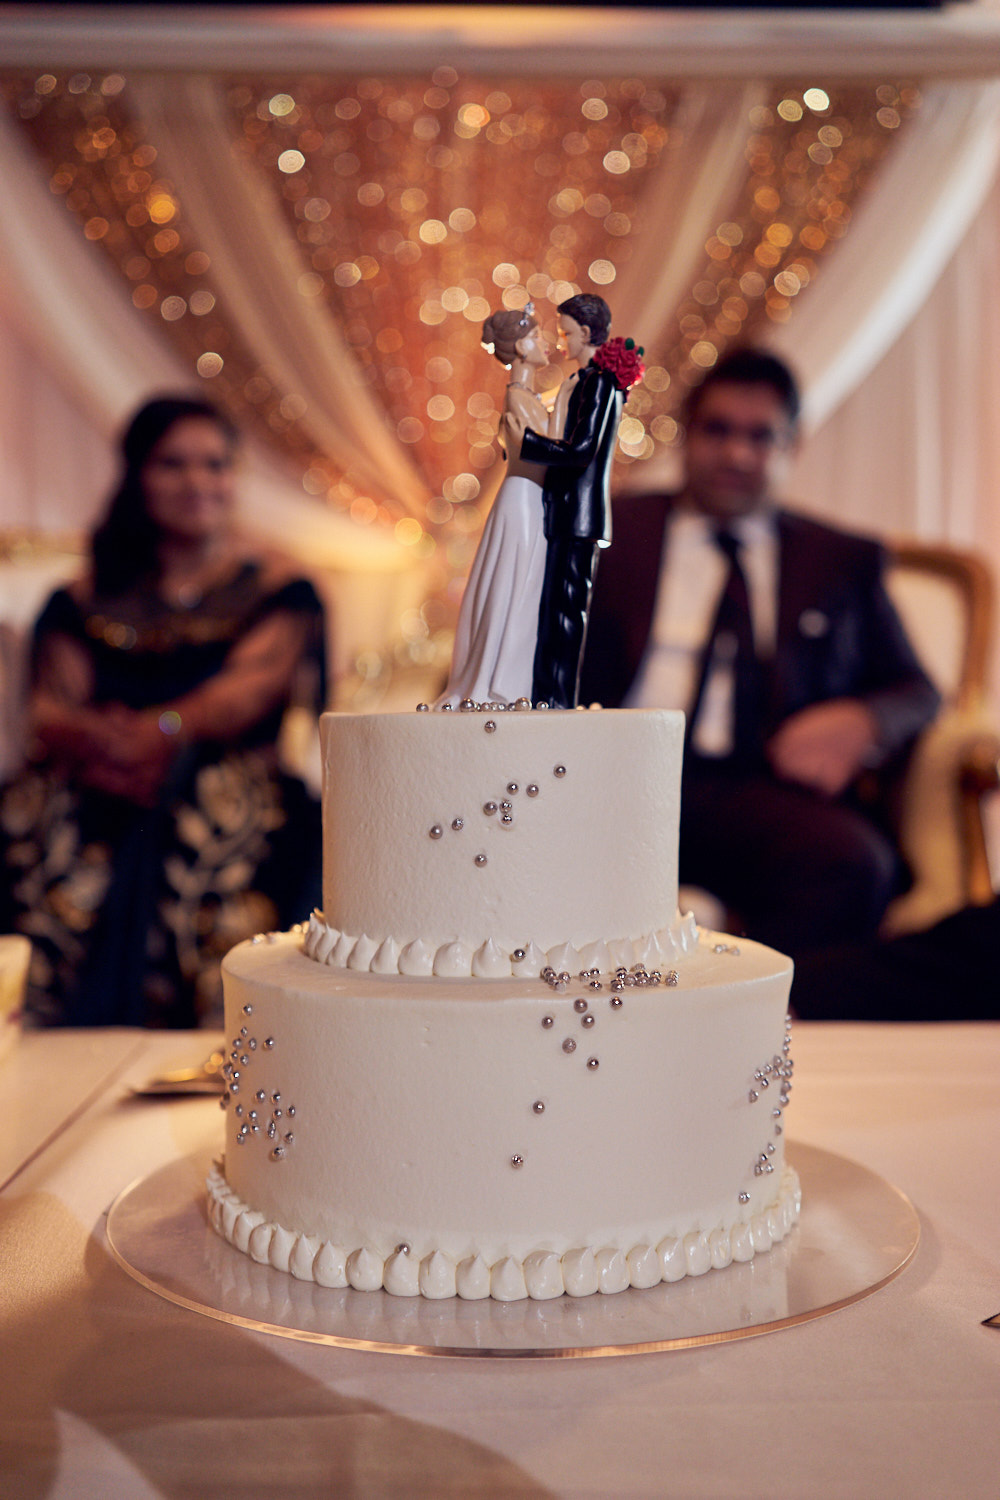 The Wedding Cake Photography at Amber India Restaurant, CA.